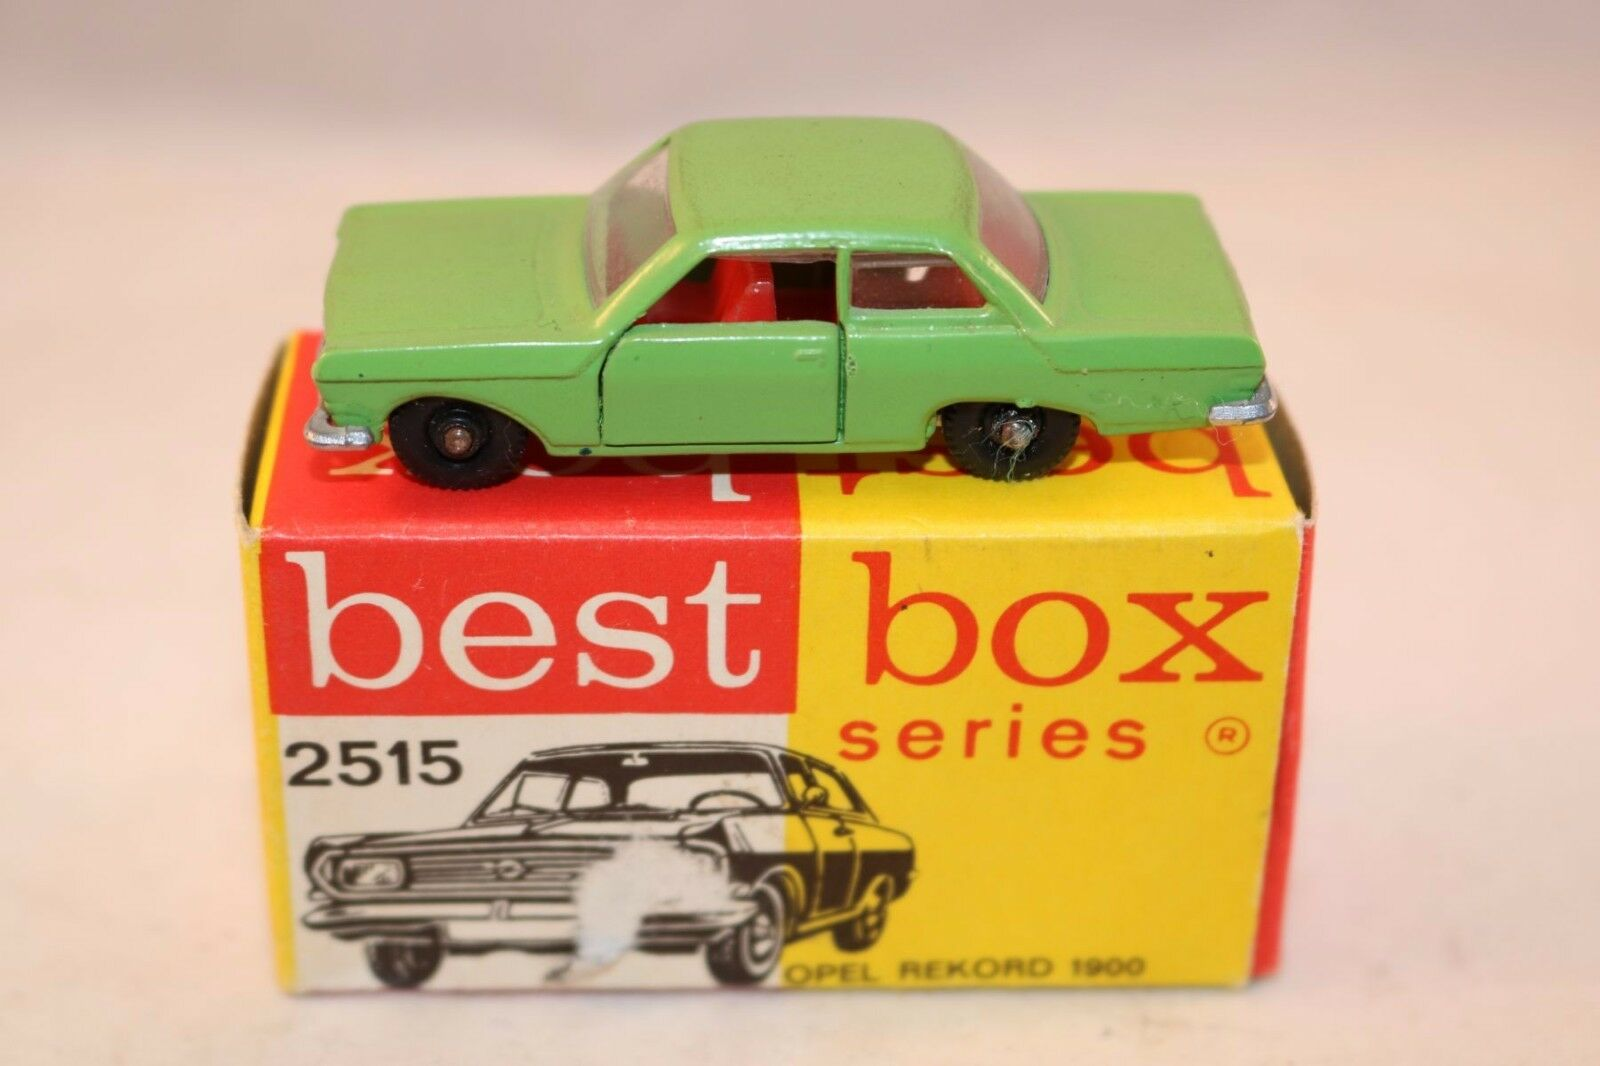 Bestbox Best Box 2515 Opel Rekord rare verde perfect mint in box super model